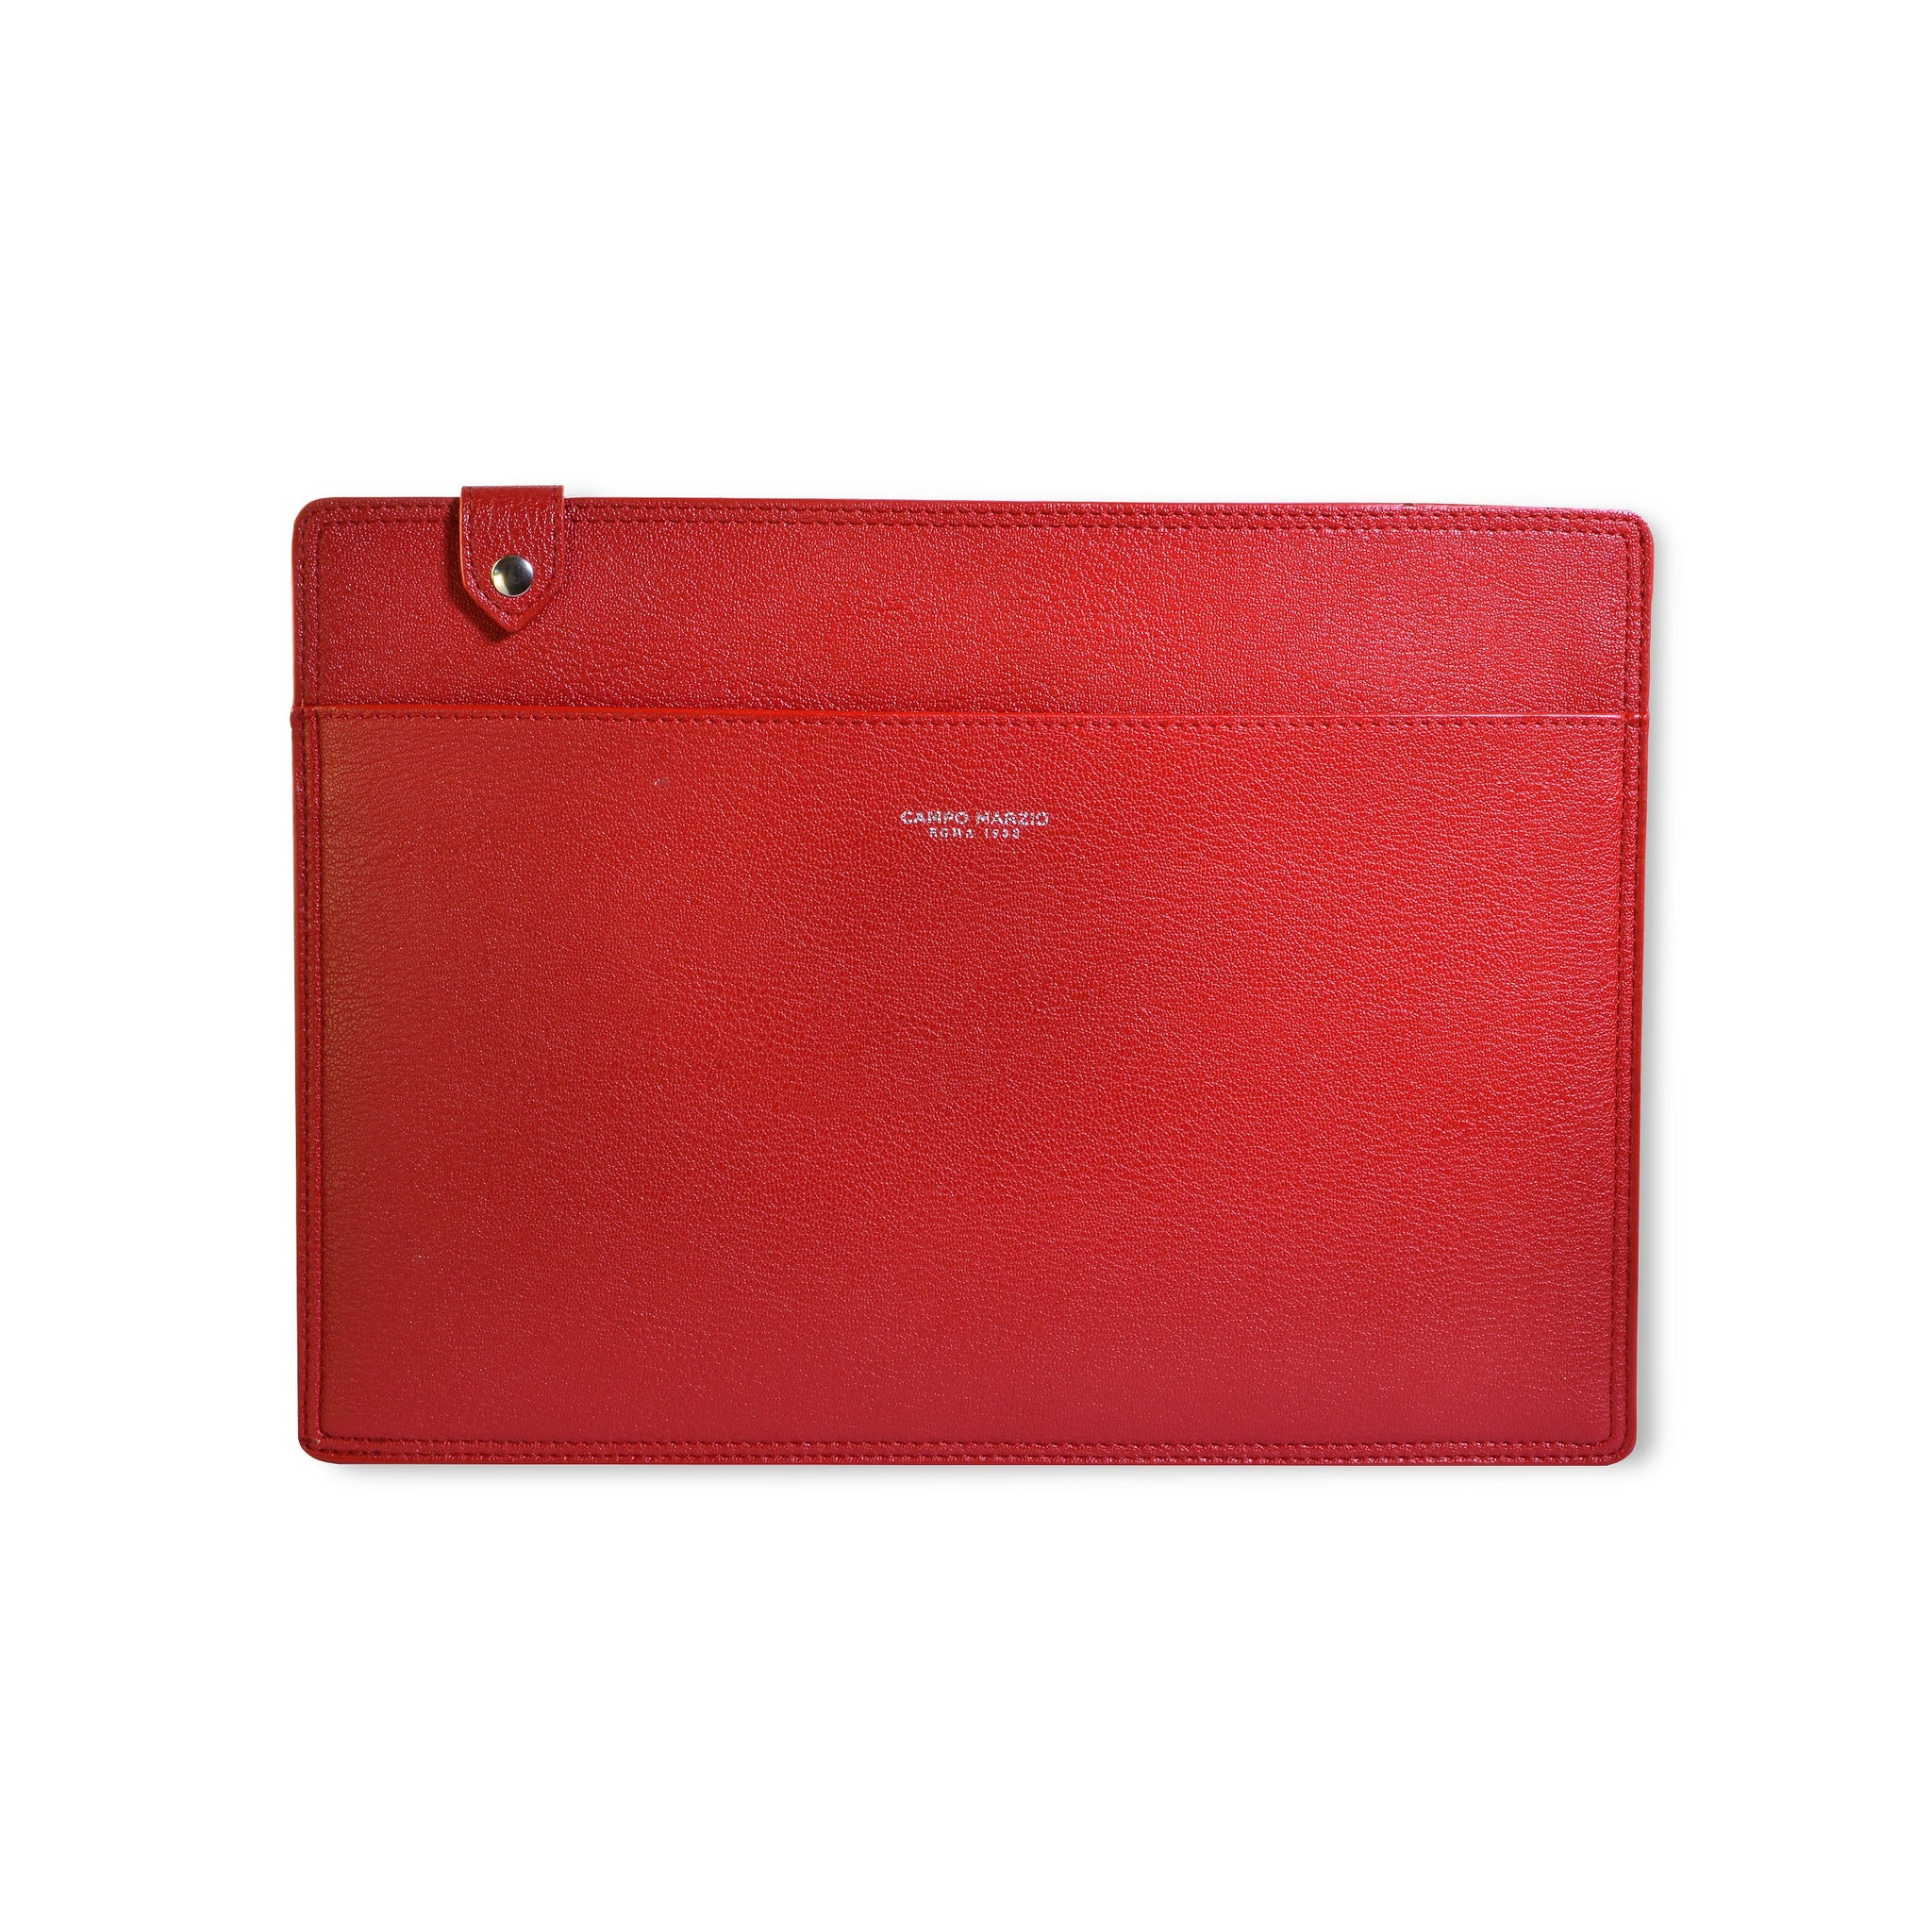 Campo Marzio A4 Japanese Document Holder - Various Colours SALE